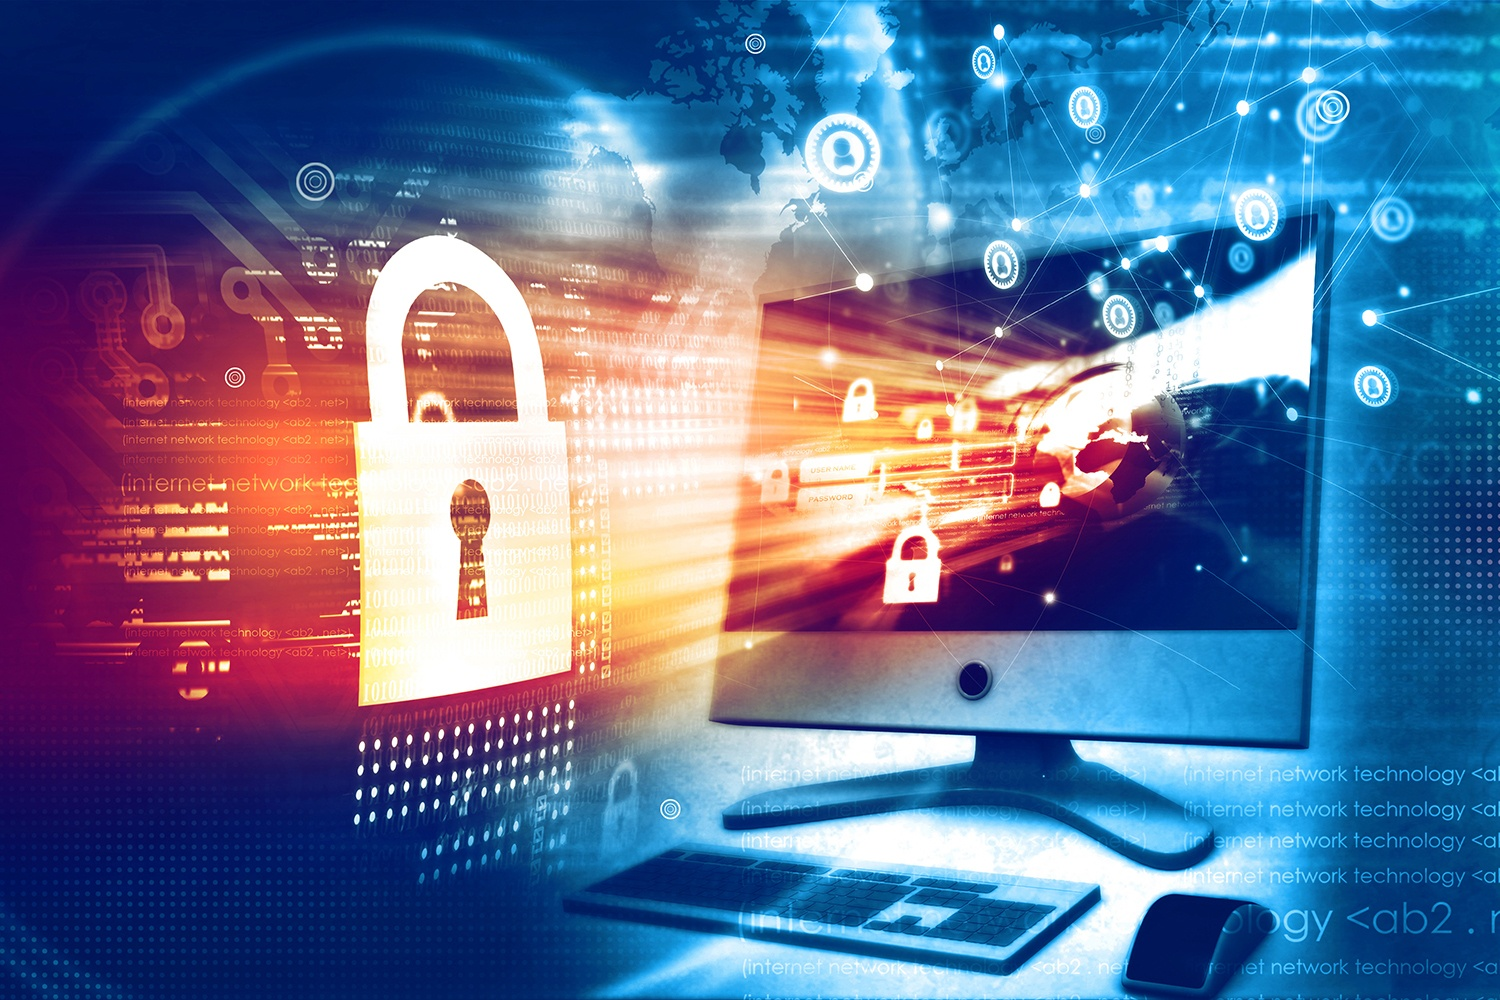 5 Common Network Security Problems And Solutions